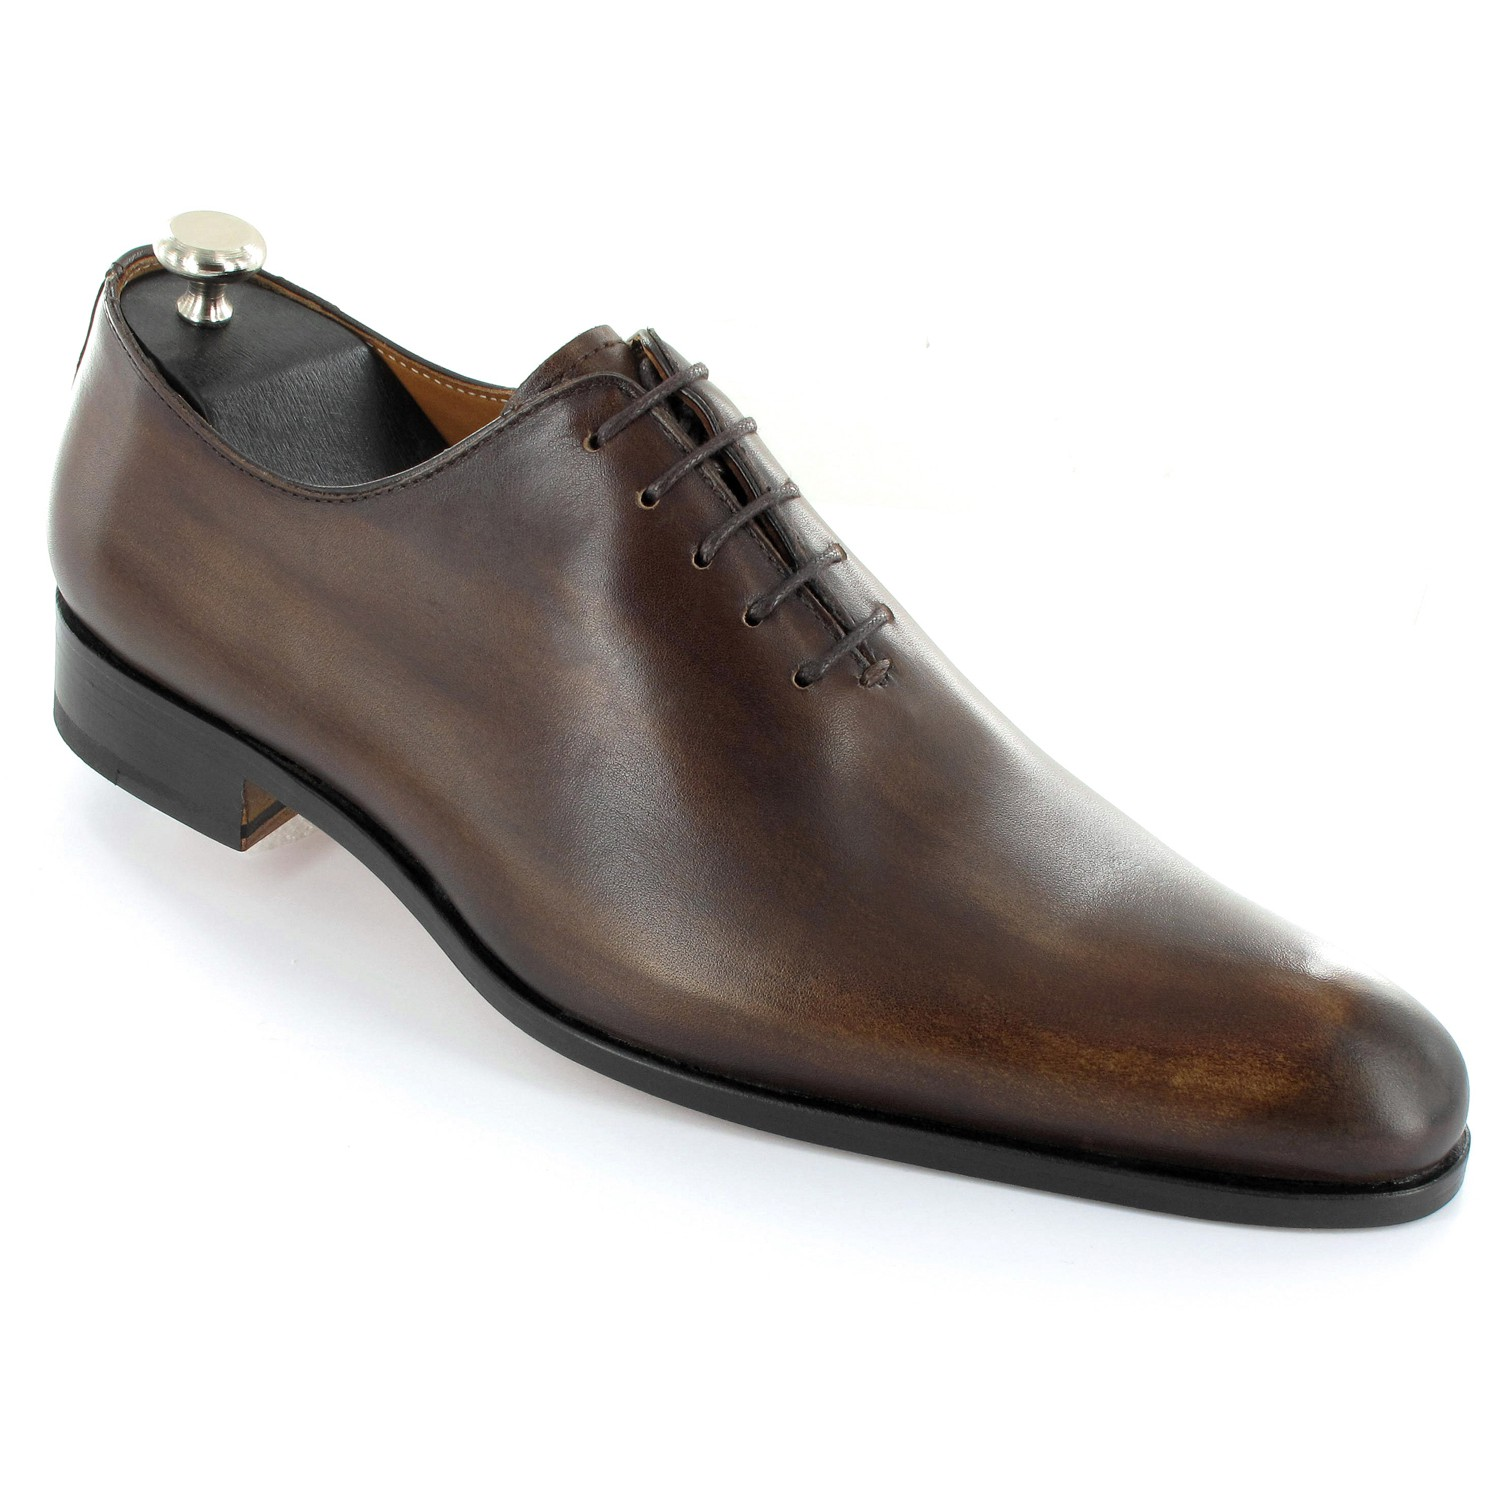 Chzussure Chaussures Ville Basse Pour Homme